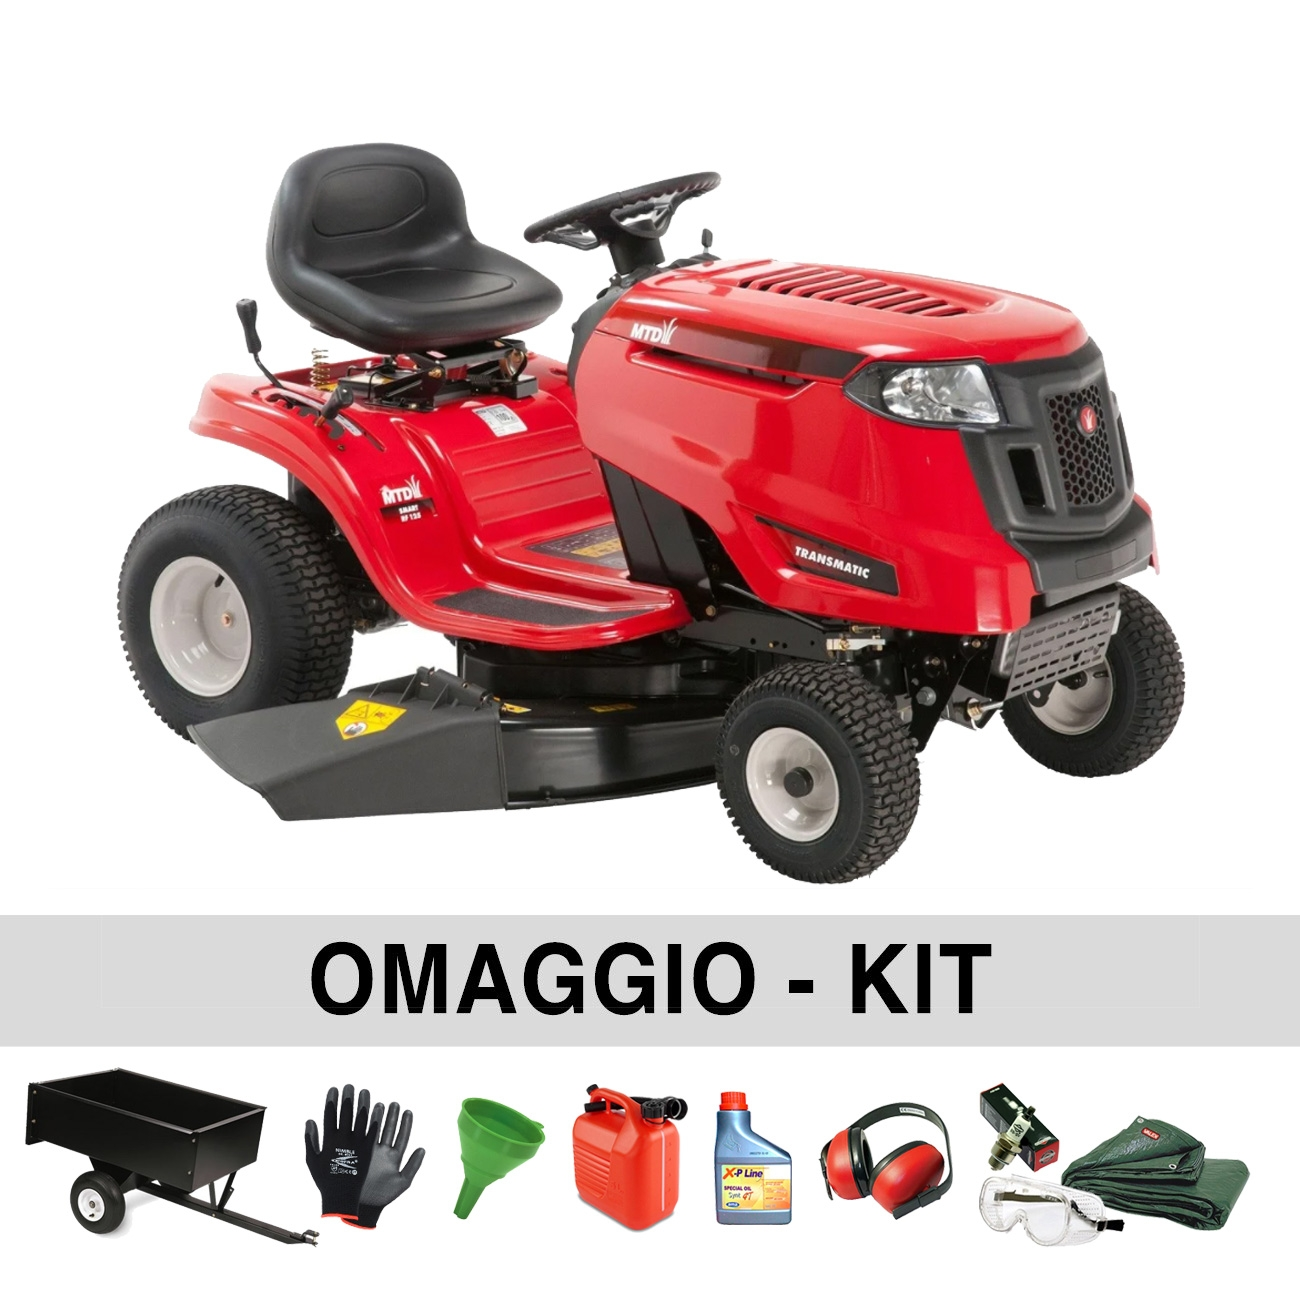 MTD Smart RF 125 Riding lawn tractor with Transmatic transmission